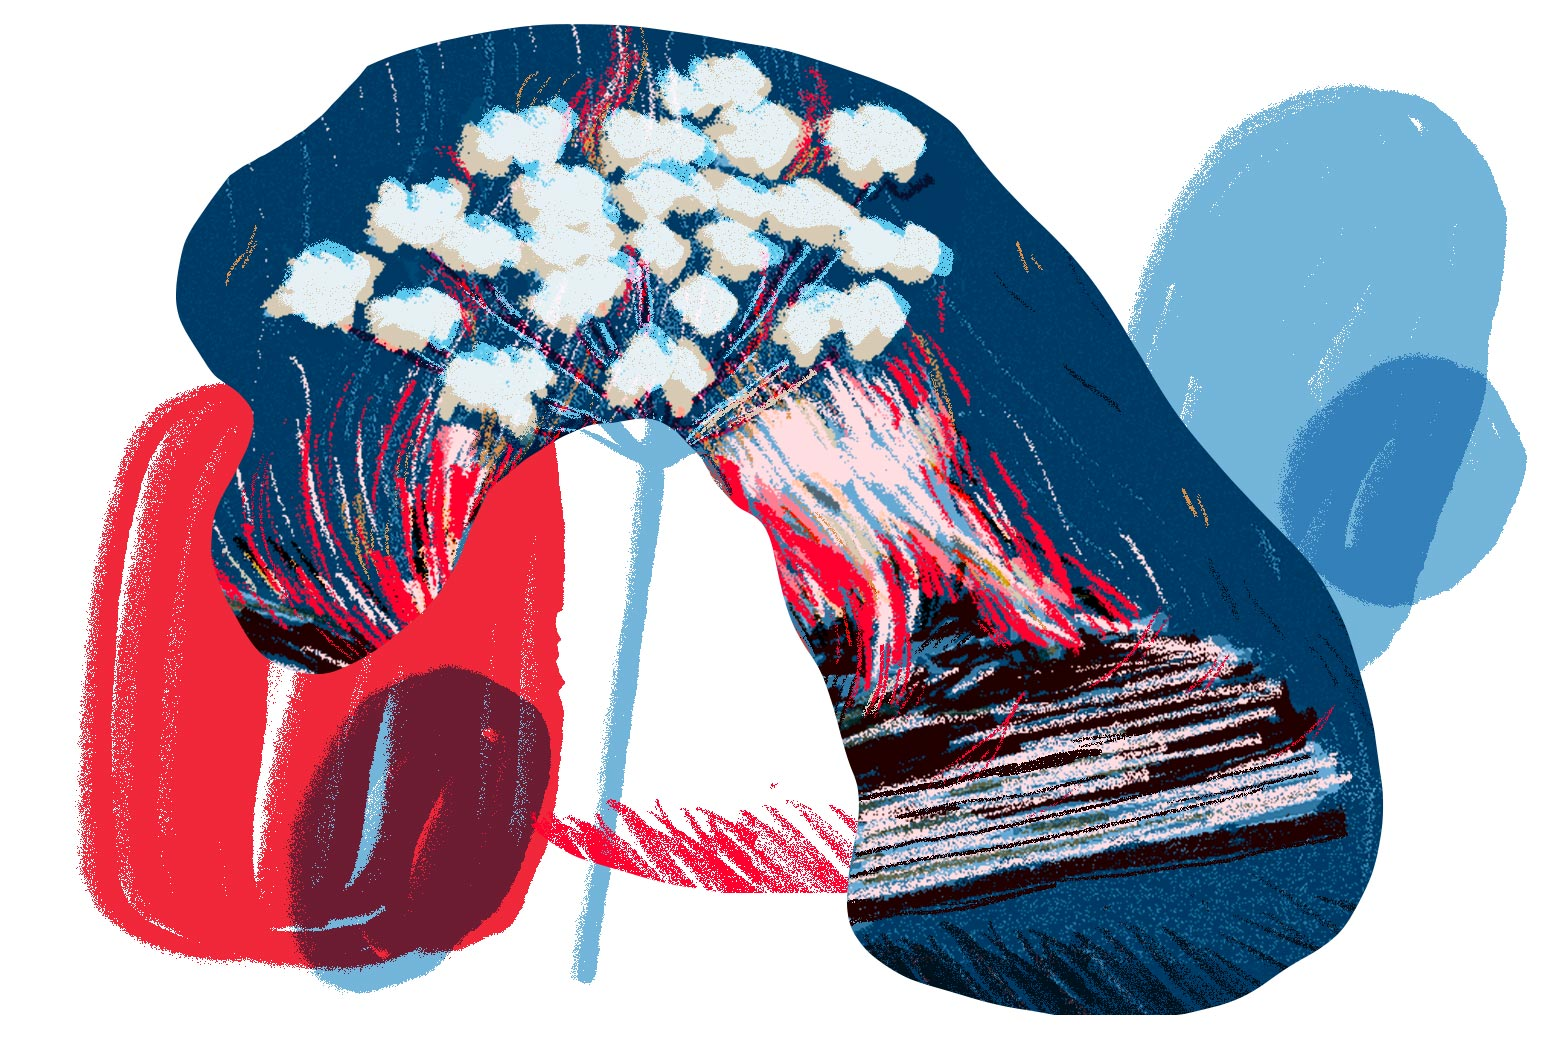 Cow parsnip and burning paper hovering over circular red and blue forms.